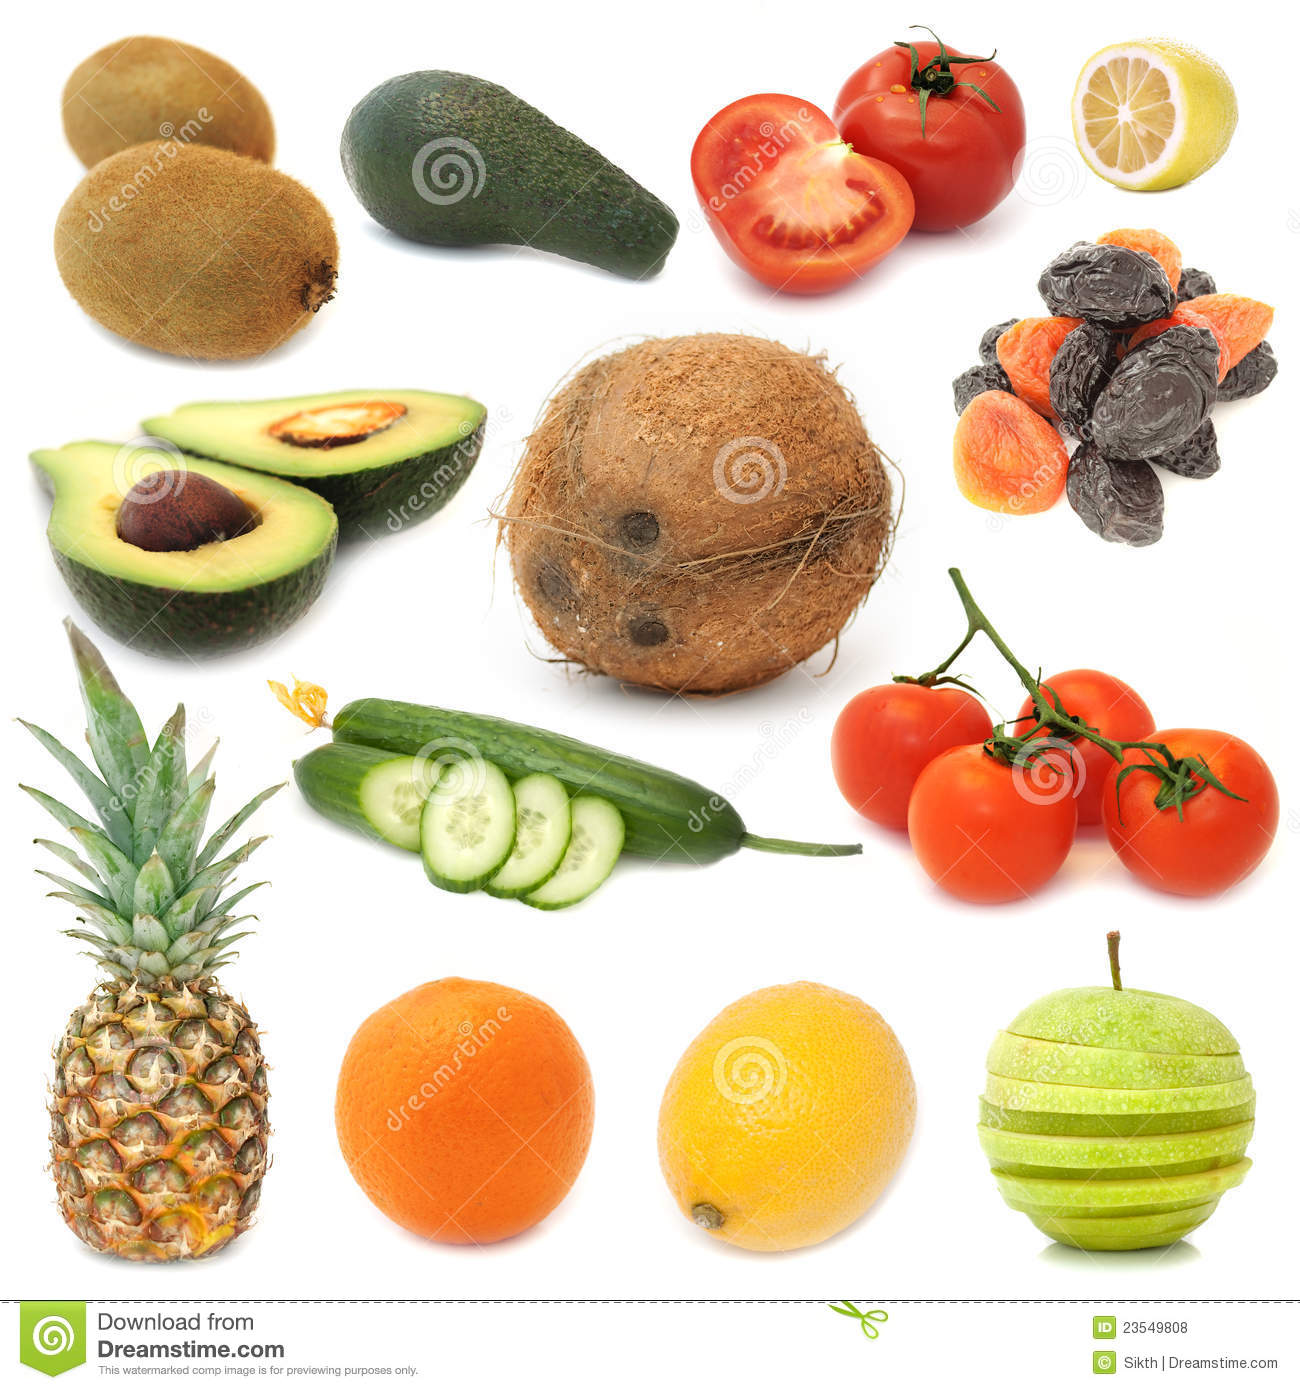 dried fruits healthy is a cucumber a fruit or a vegetable